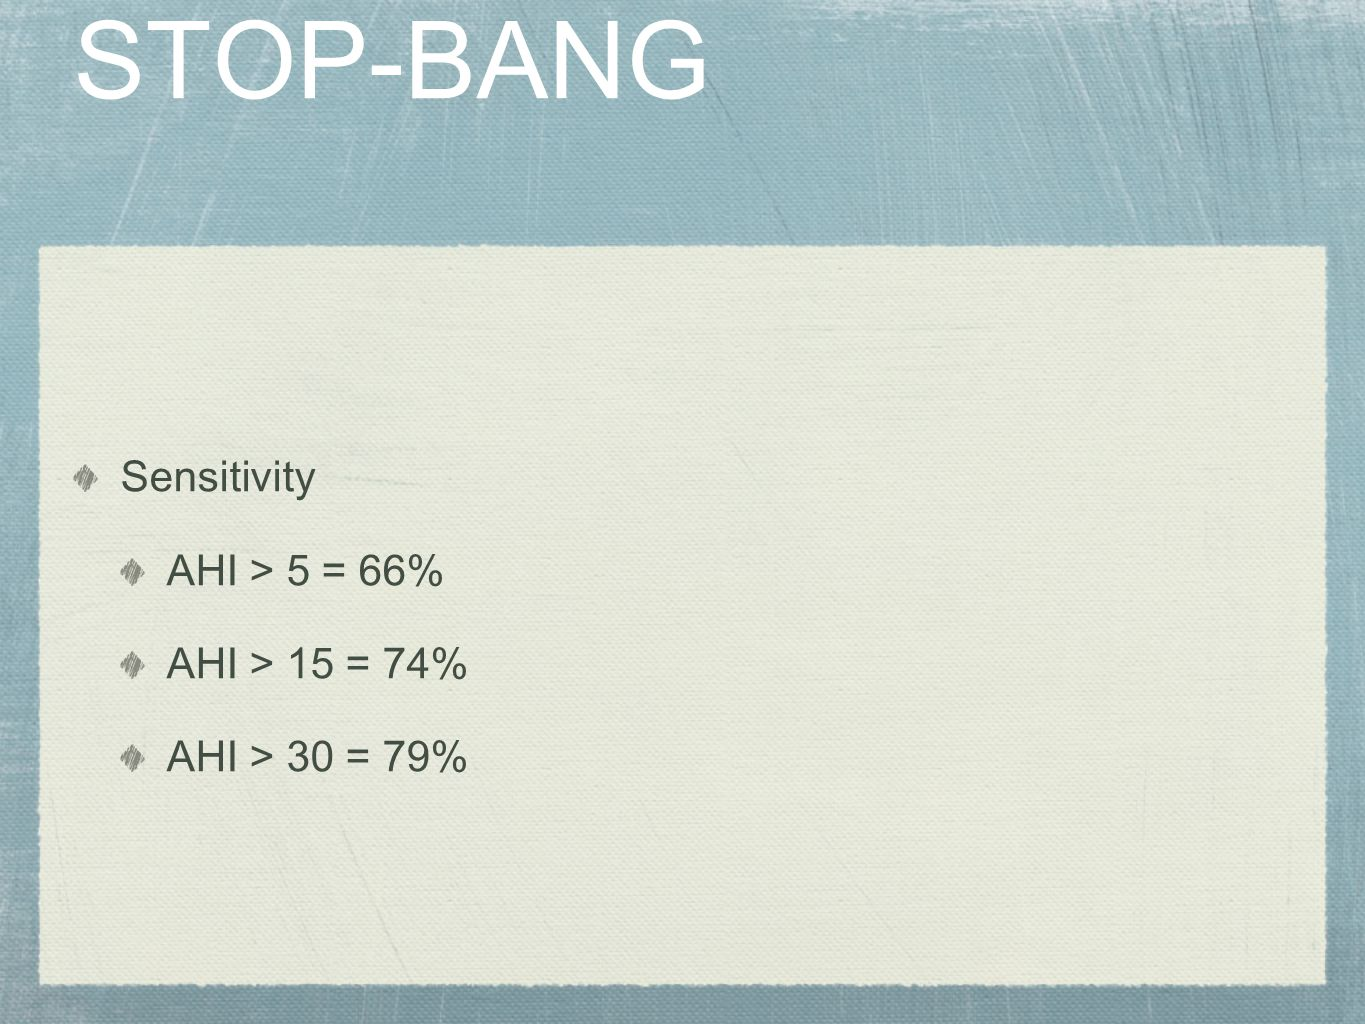 STOP-BANG Sensitivity AHI > 5 = 66% AHI > 15 = 74%